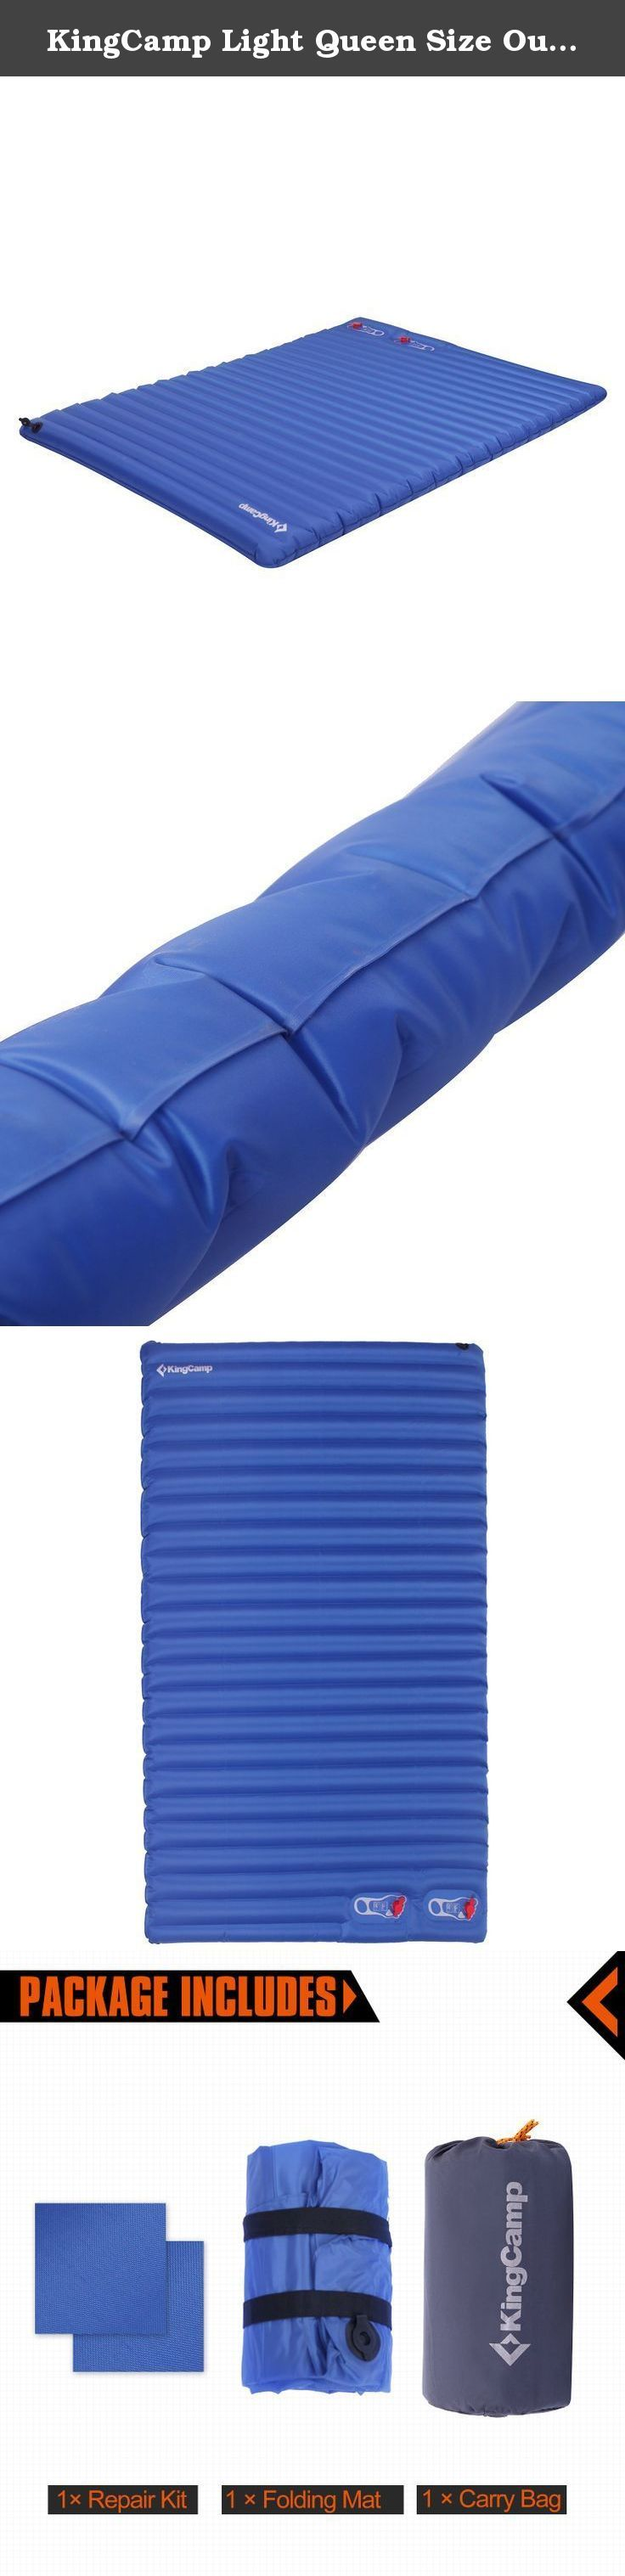 KingCamp Light Queen Size Outdoor Camping Air Mattress Mat Pad Bed with Built-in Foot Pump. It is coated with a high quality polyester laminate which helps prevent stretching and gives a strong yet comfortable foundation for sleeping. The motility and functionality it offers will make any camper a happy travel. The built in foot pump is faster and efficient, eliminating the need for a power source, or charging batteries like some other mats. This mat is also waterproof and puncture…